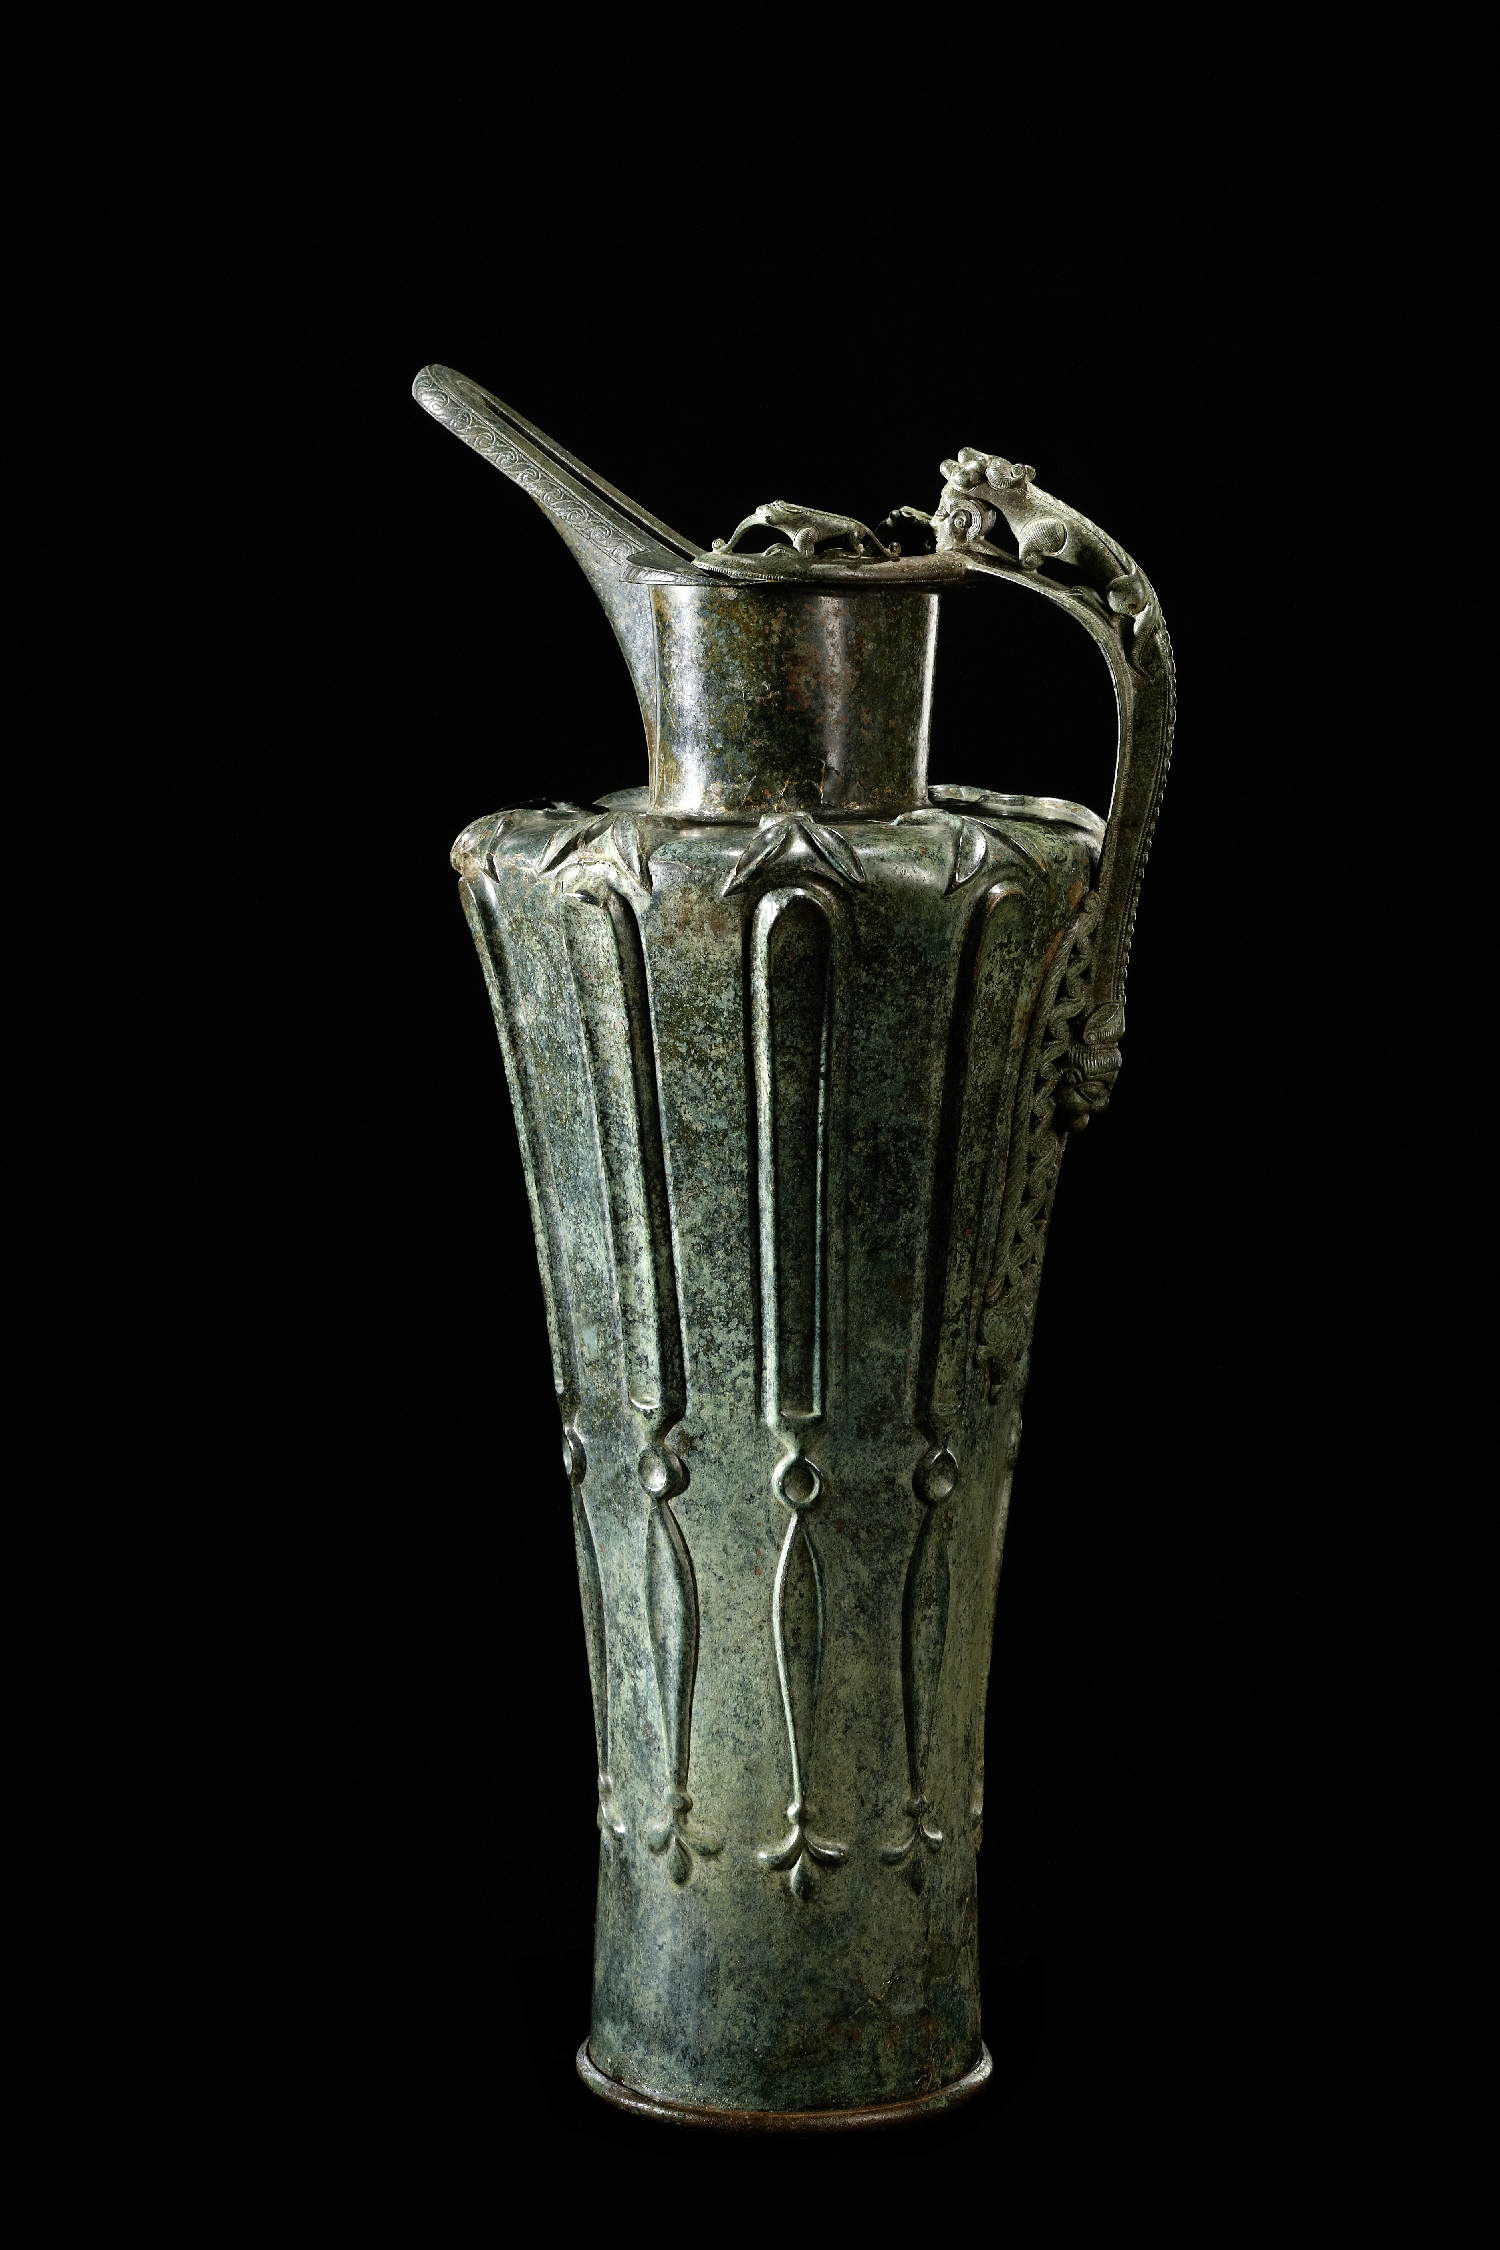 Beak-spouted jug, discovery location: Hallein-Dürrnberg, Latène Period, phase Lt A, 5th c. BC, bronze, inv. no. ARCH 6629